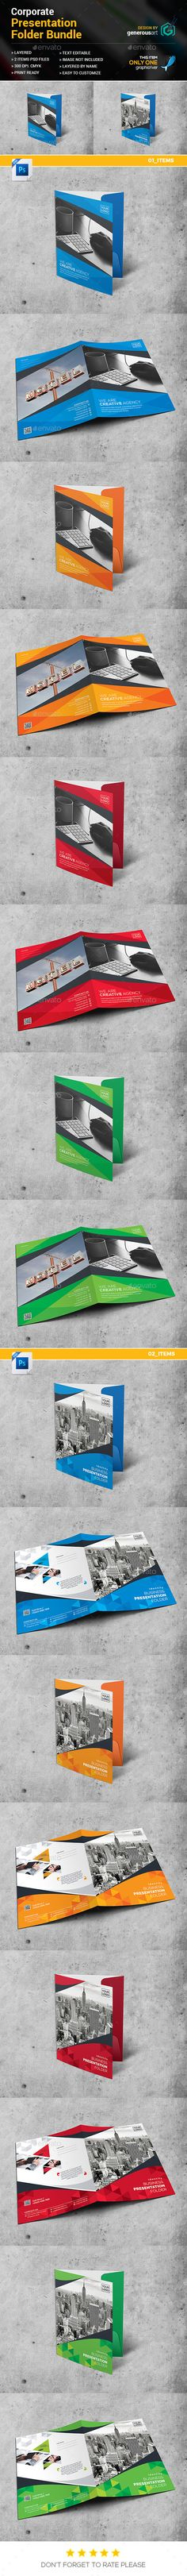 Corporate Business Presentation Folder Design Template Bundle 2 in 1 - Stationery Print Templates PSD. Download here: https://graphicriver.net/item/presentation-folder-bundle-2-in-1/19261205?ref=yinkira